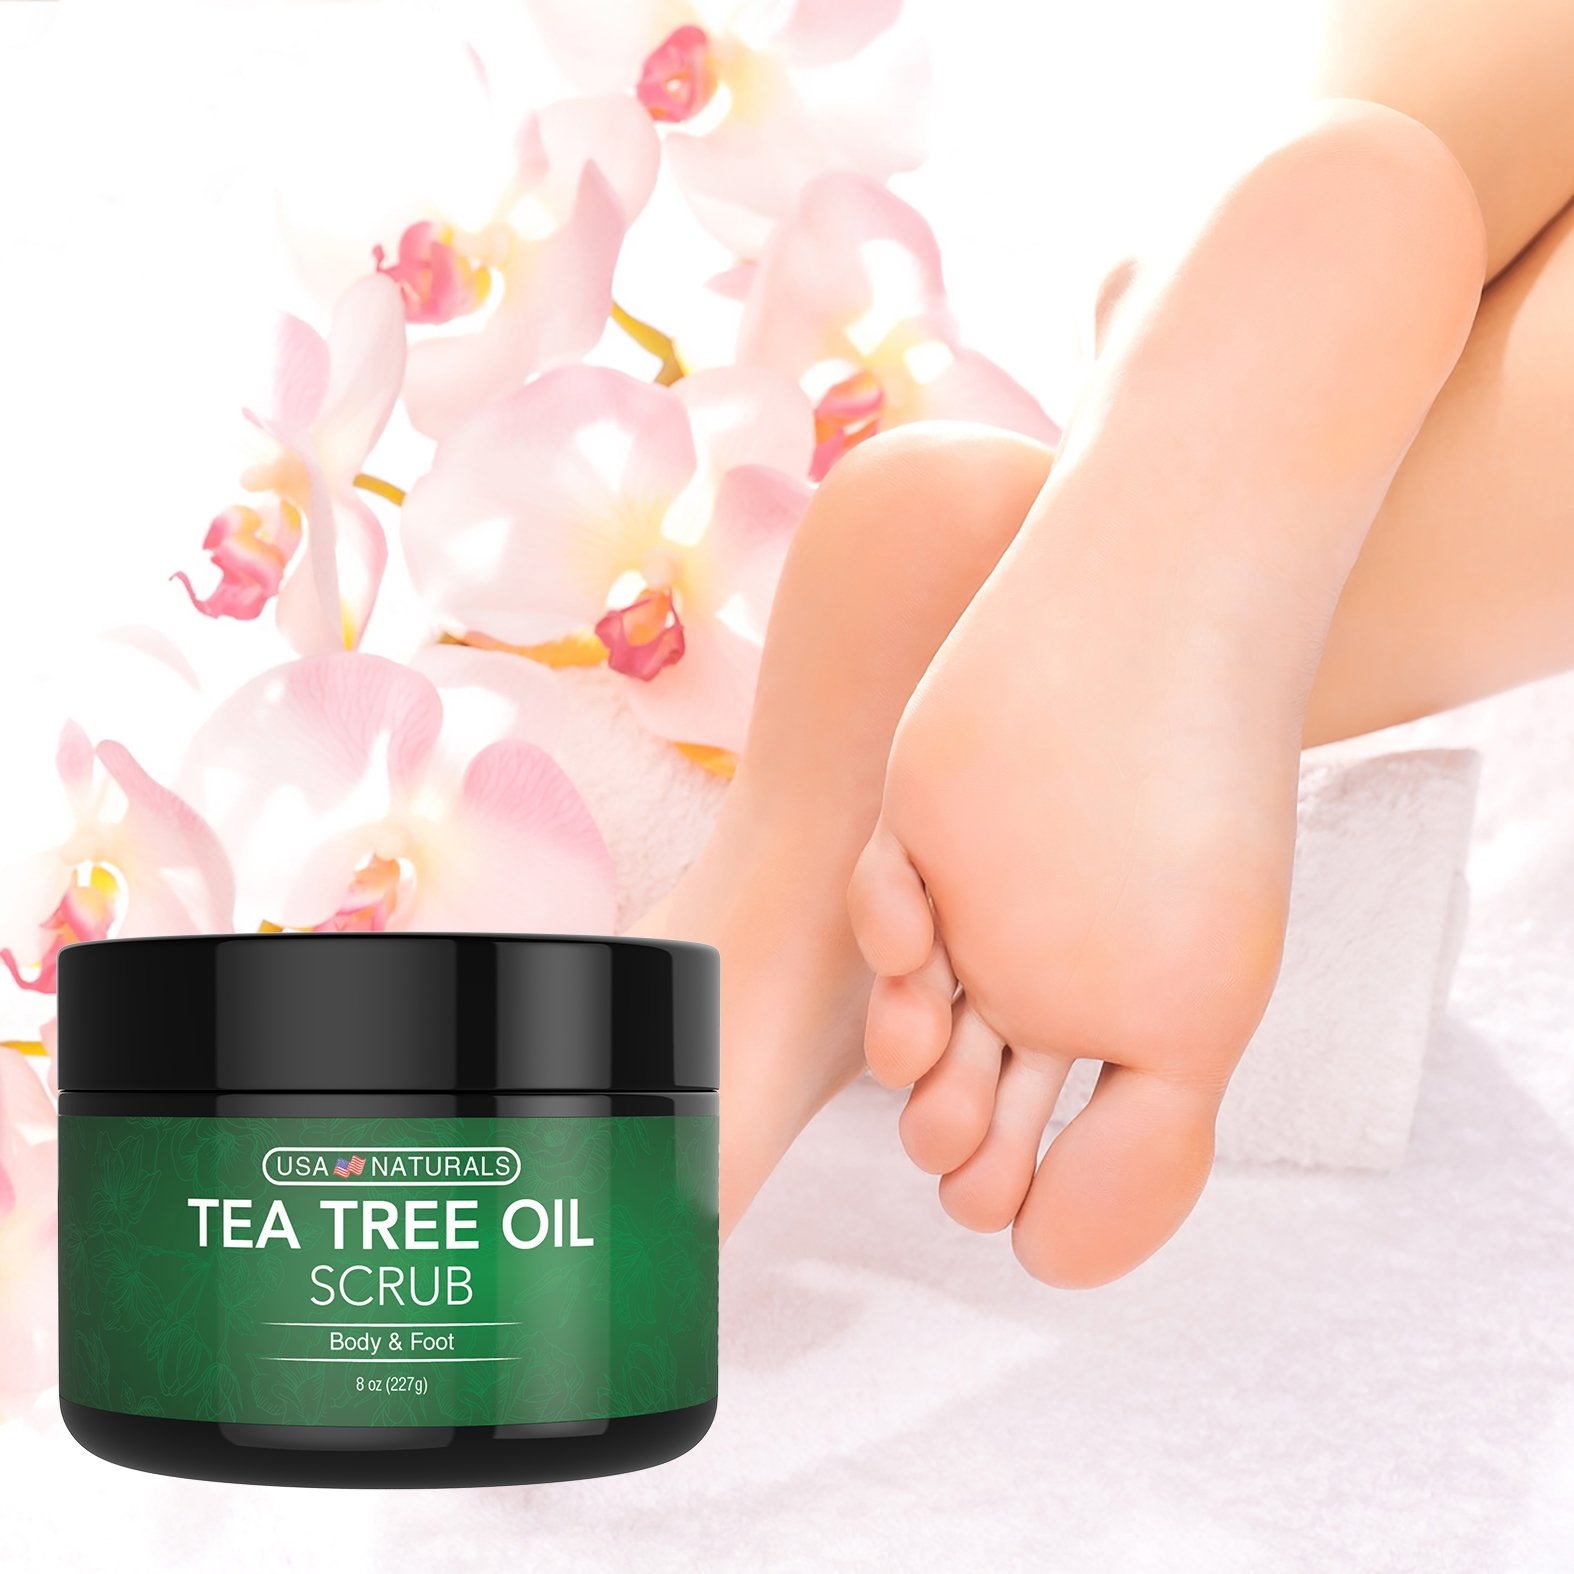 Tea Tree Oil Foot and Body Scrub - Antifungal Treatment - Exfoliating Scrub with a Unique Blend of Essential Oils - Smooths Calluses - Helps With Athlete's Foot, Acne, Jock Itch & Dead, Dry Skin by USA Naturals (Image #6)